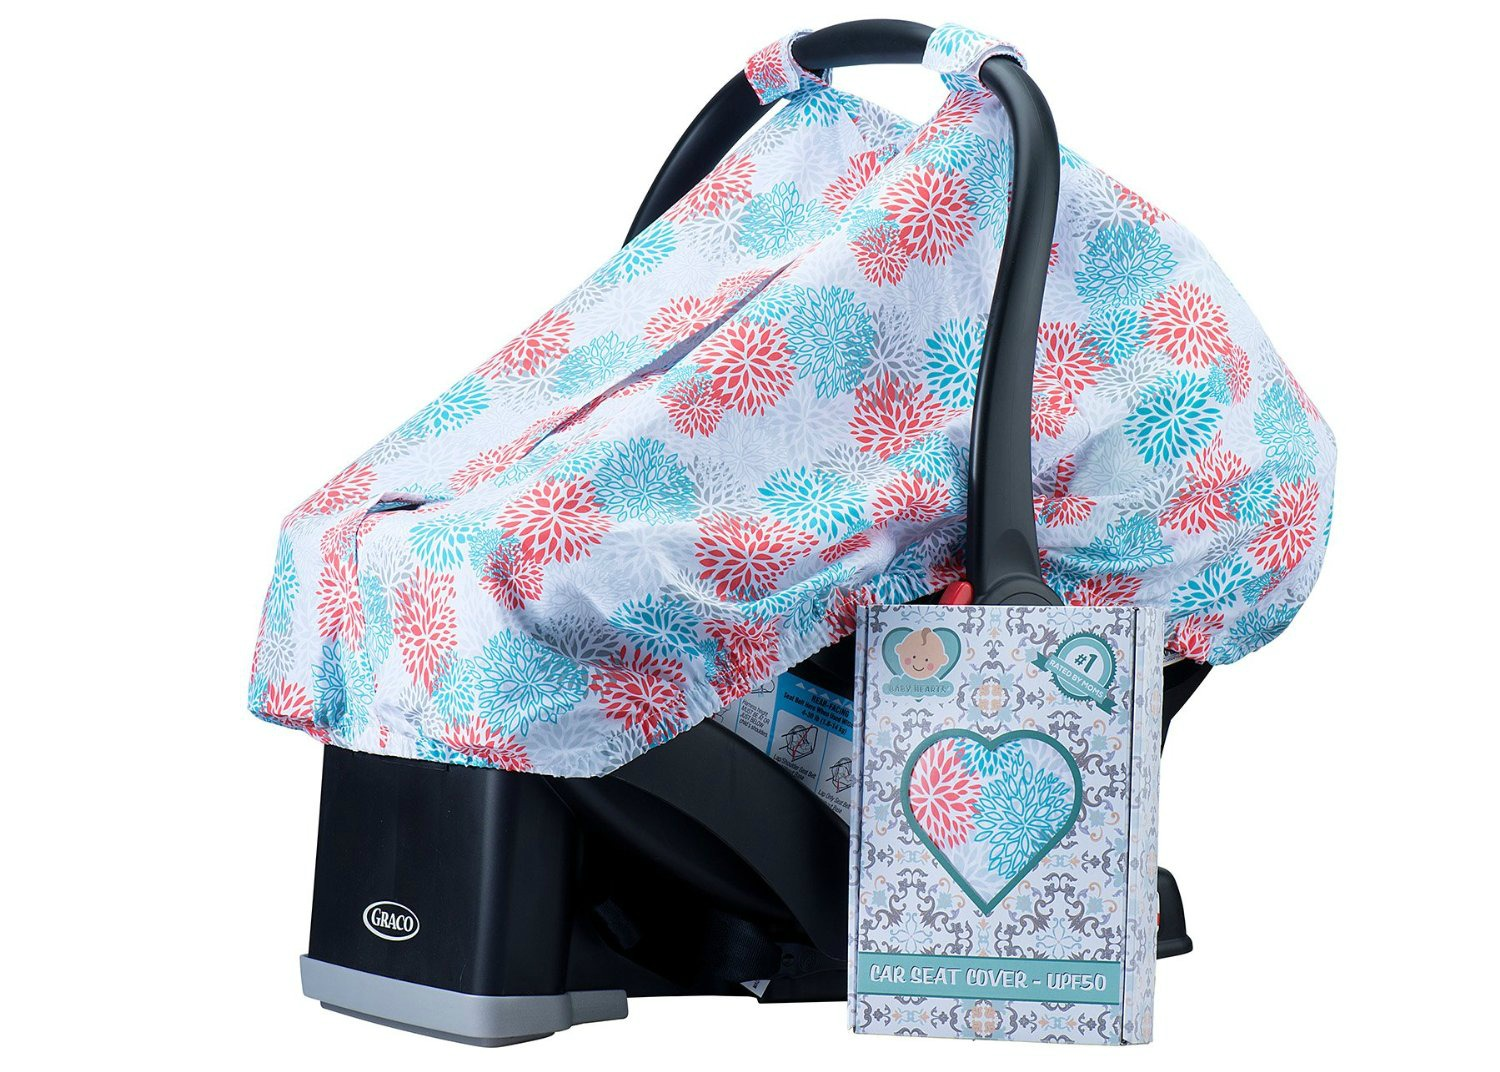 Car Seat Giveaway: Product Discovery: Baby Hearts UV Protective Car Seat